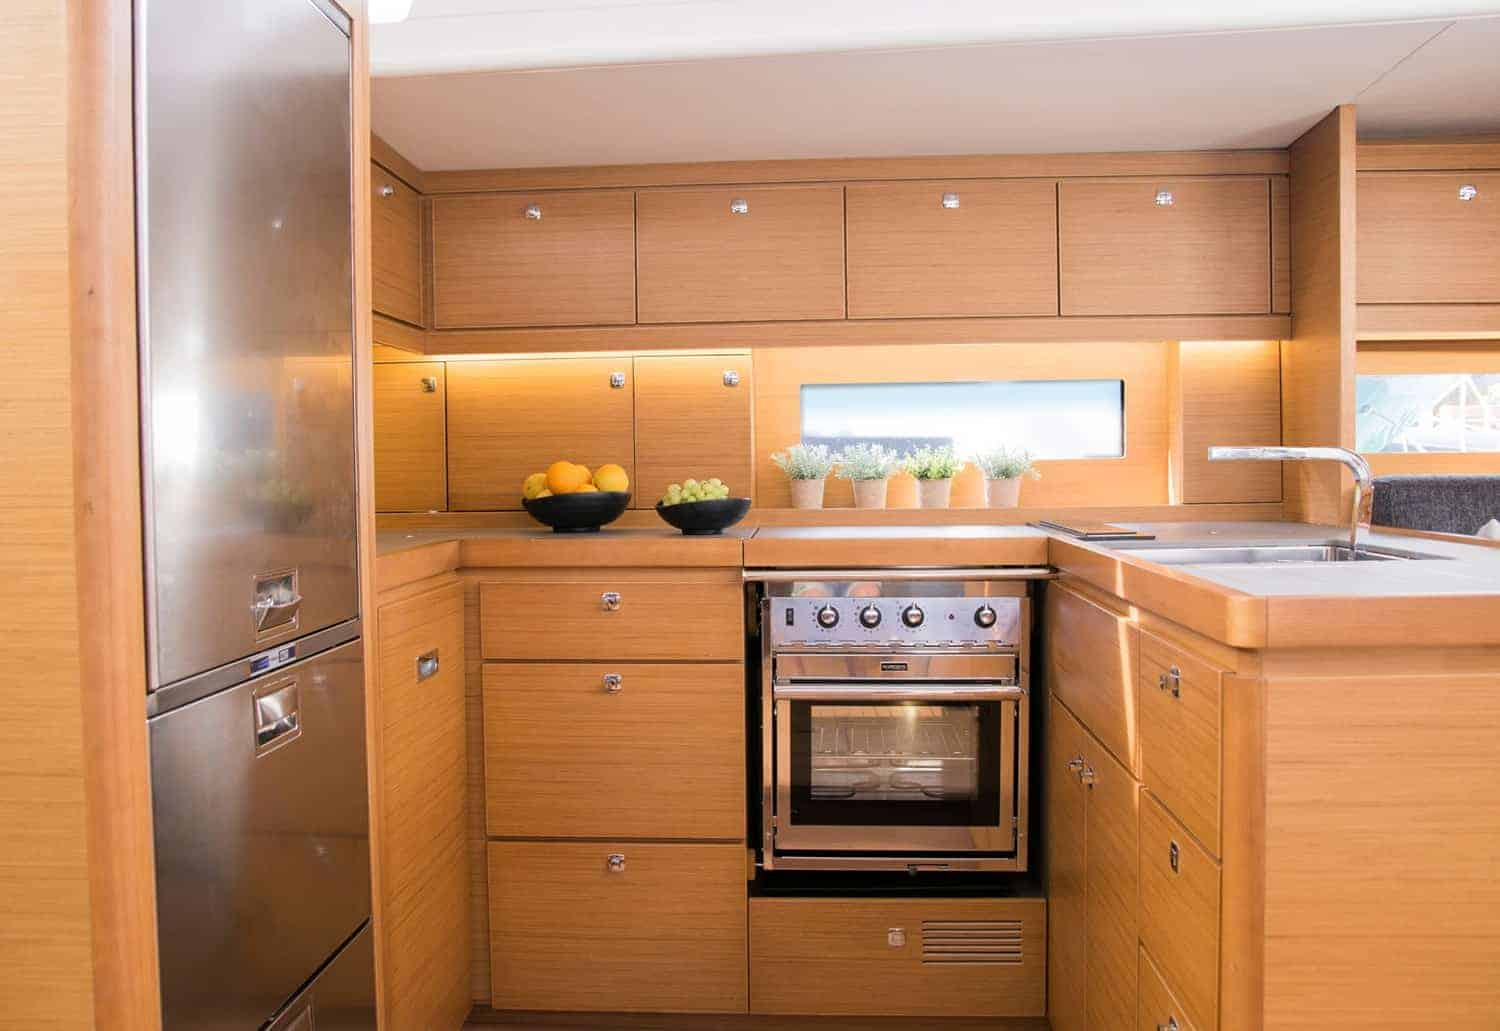 Luxurious and minimalistic, fully equipped kitchen area of the Dufour Exclusive 63